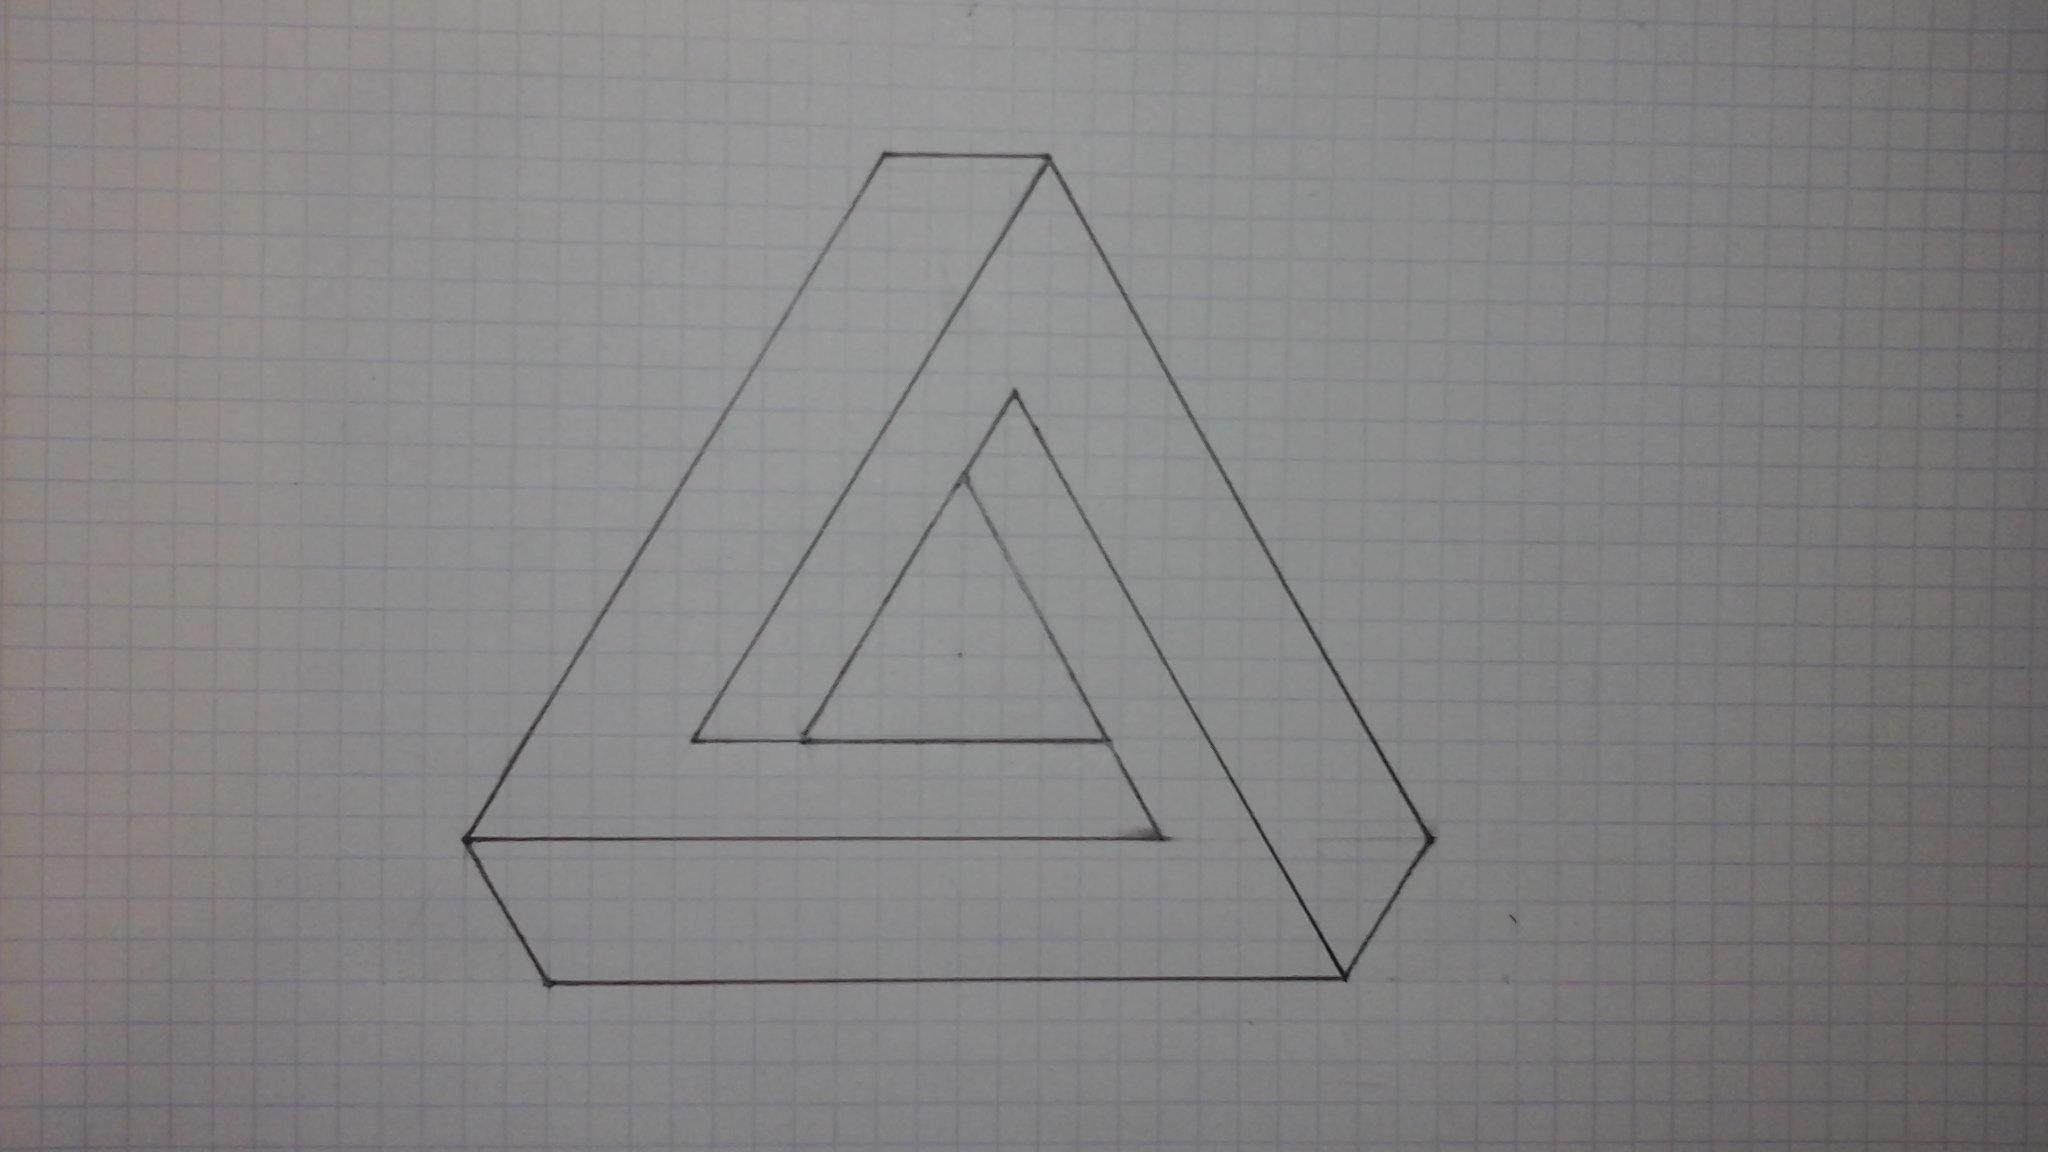 3 Ways To Draw An Impossible Triangle